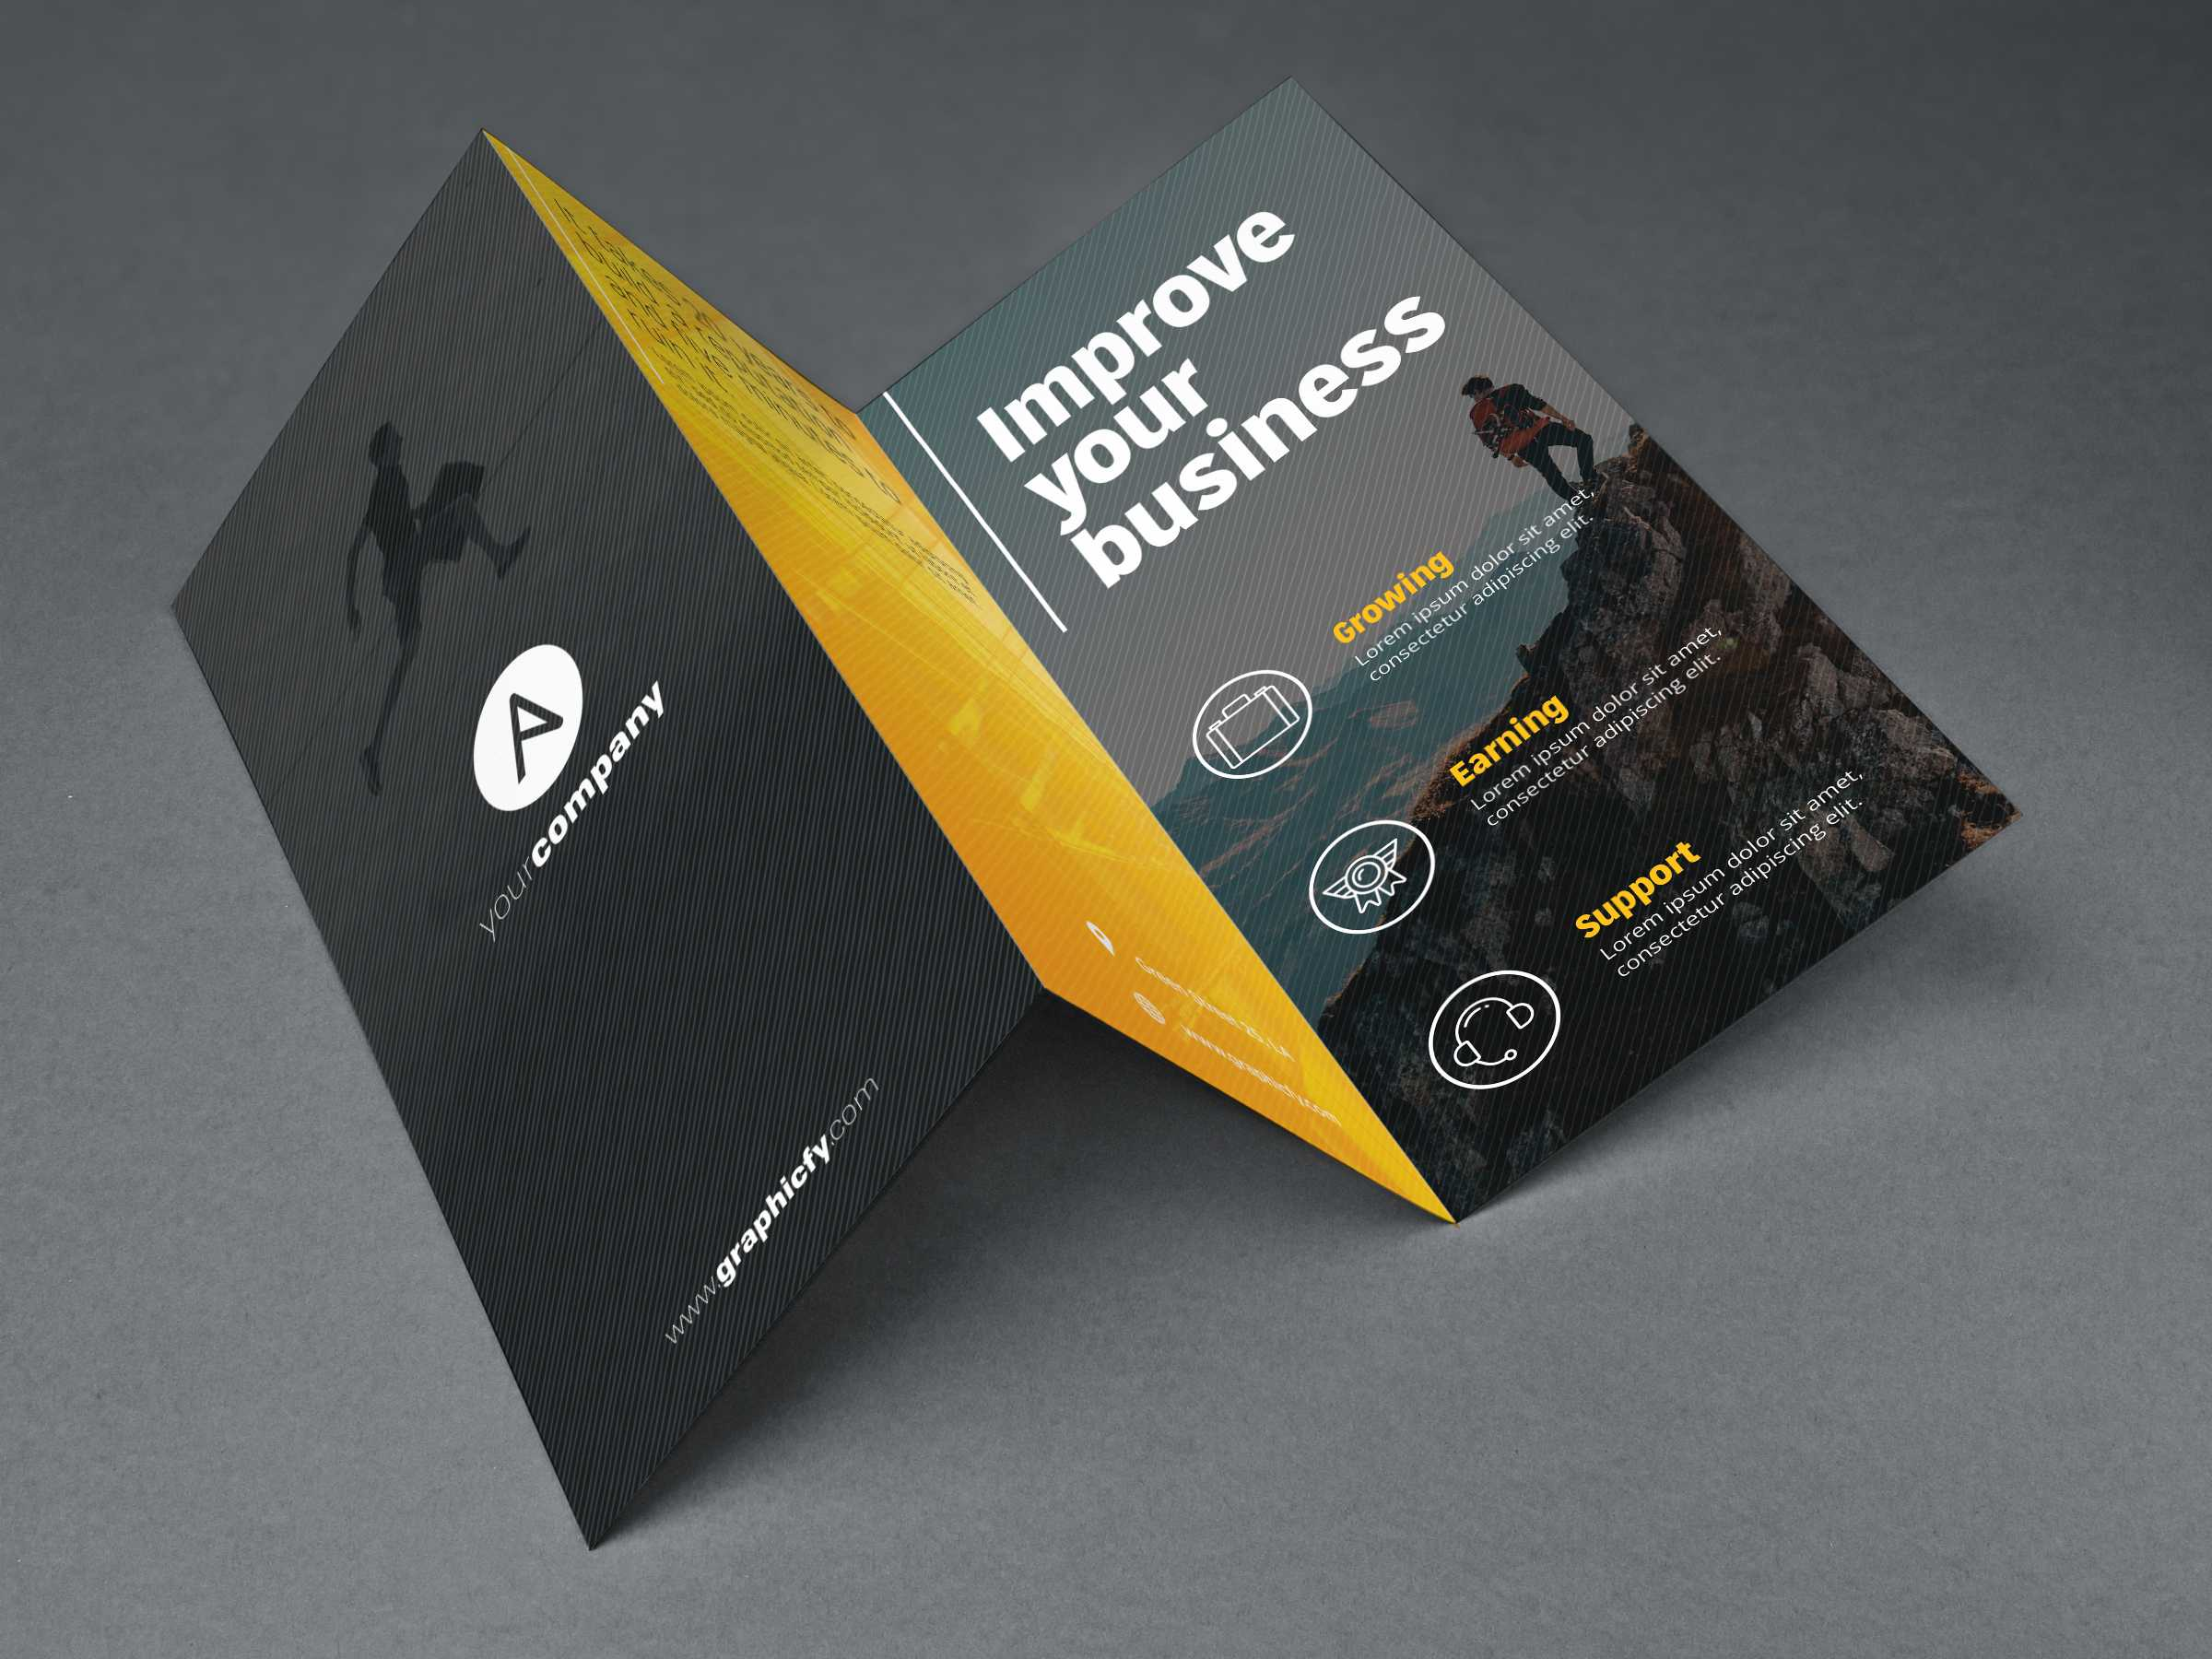 Tri Fold Brochure Template Psd - Graphicfy Market In Brochure 3 Fold Template Psd